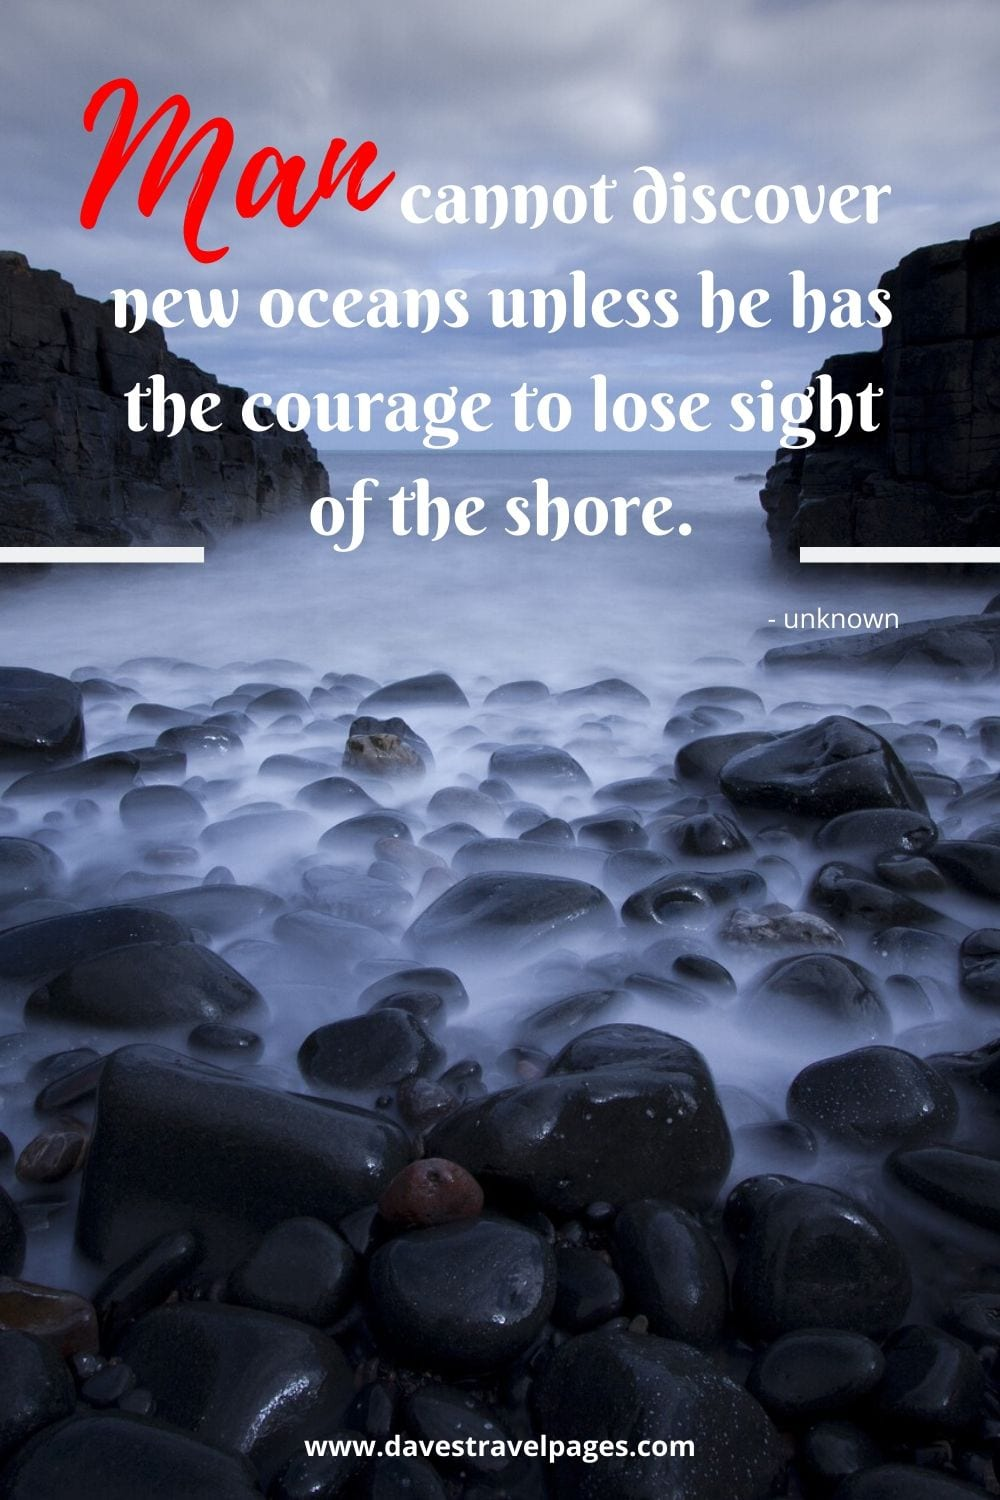 Adventure and Sailing quotes: Man cannot discover new oceans unless he has the courage to lose sight of the shore.